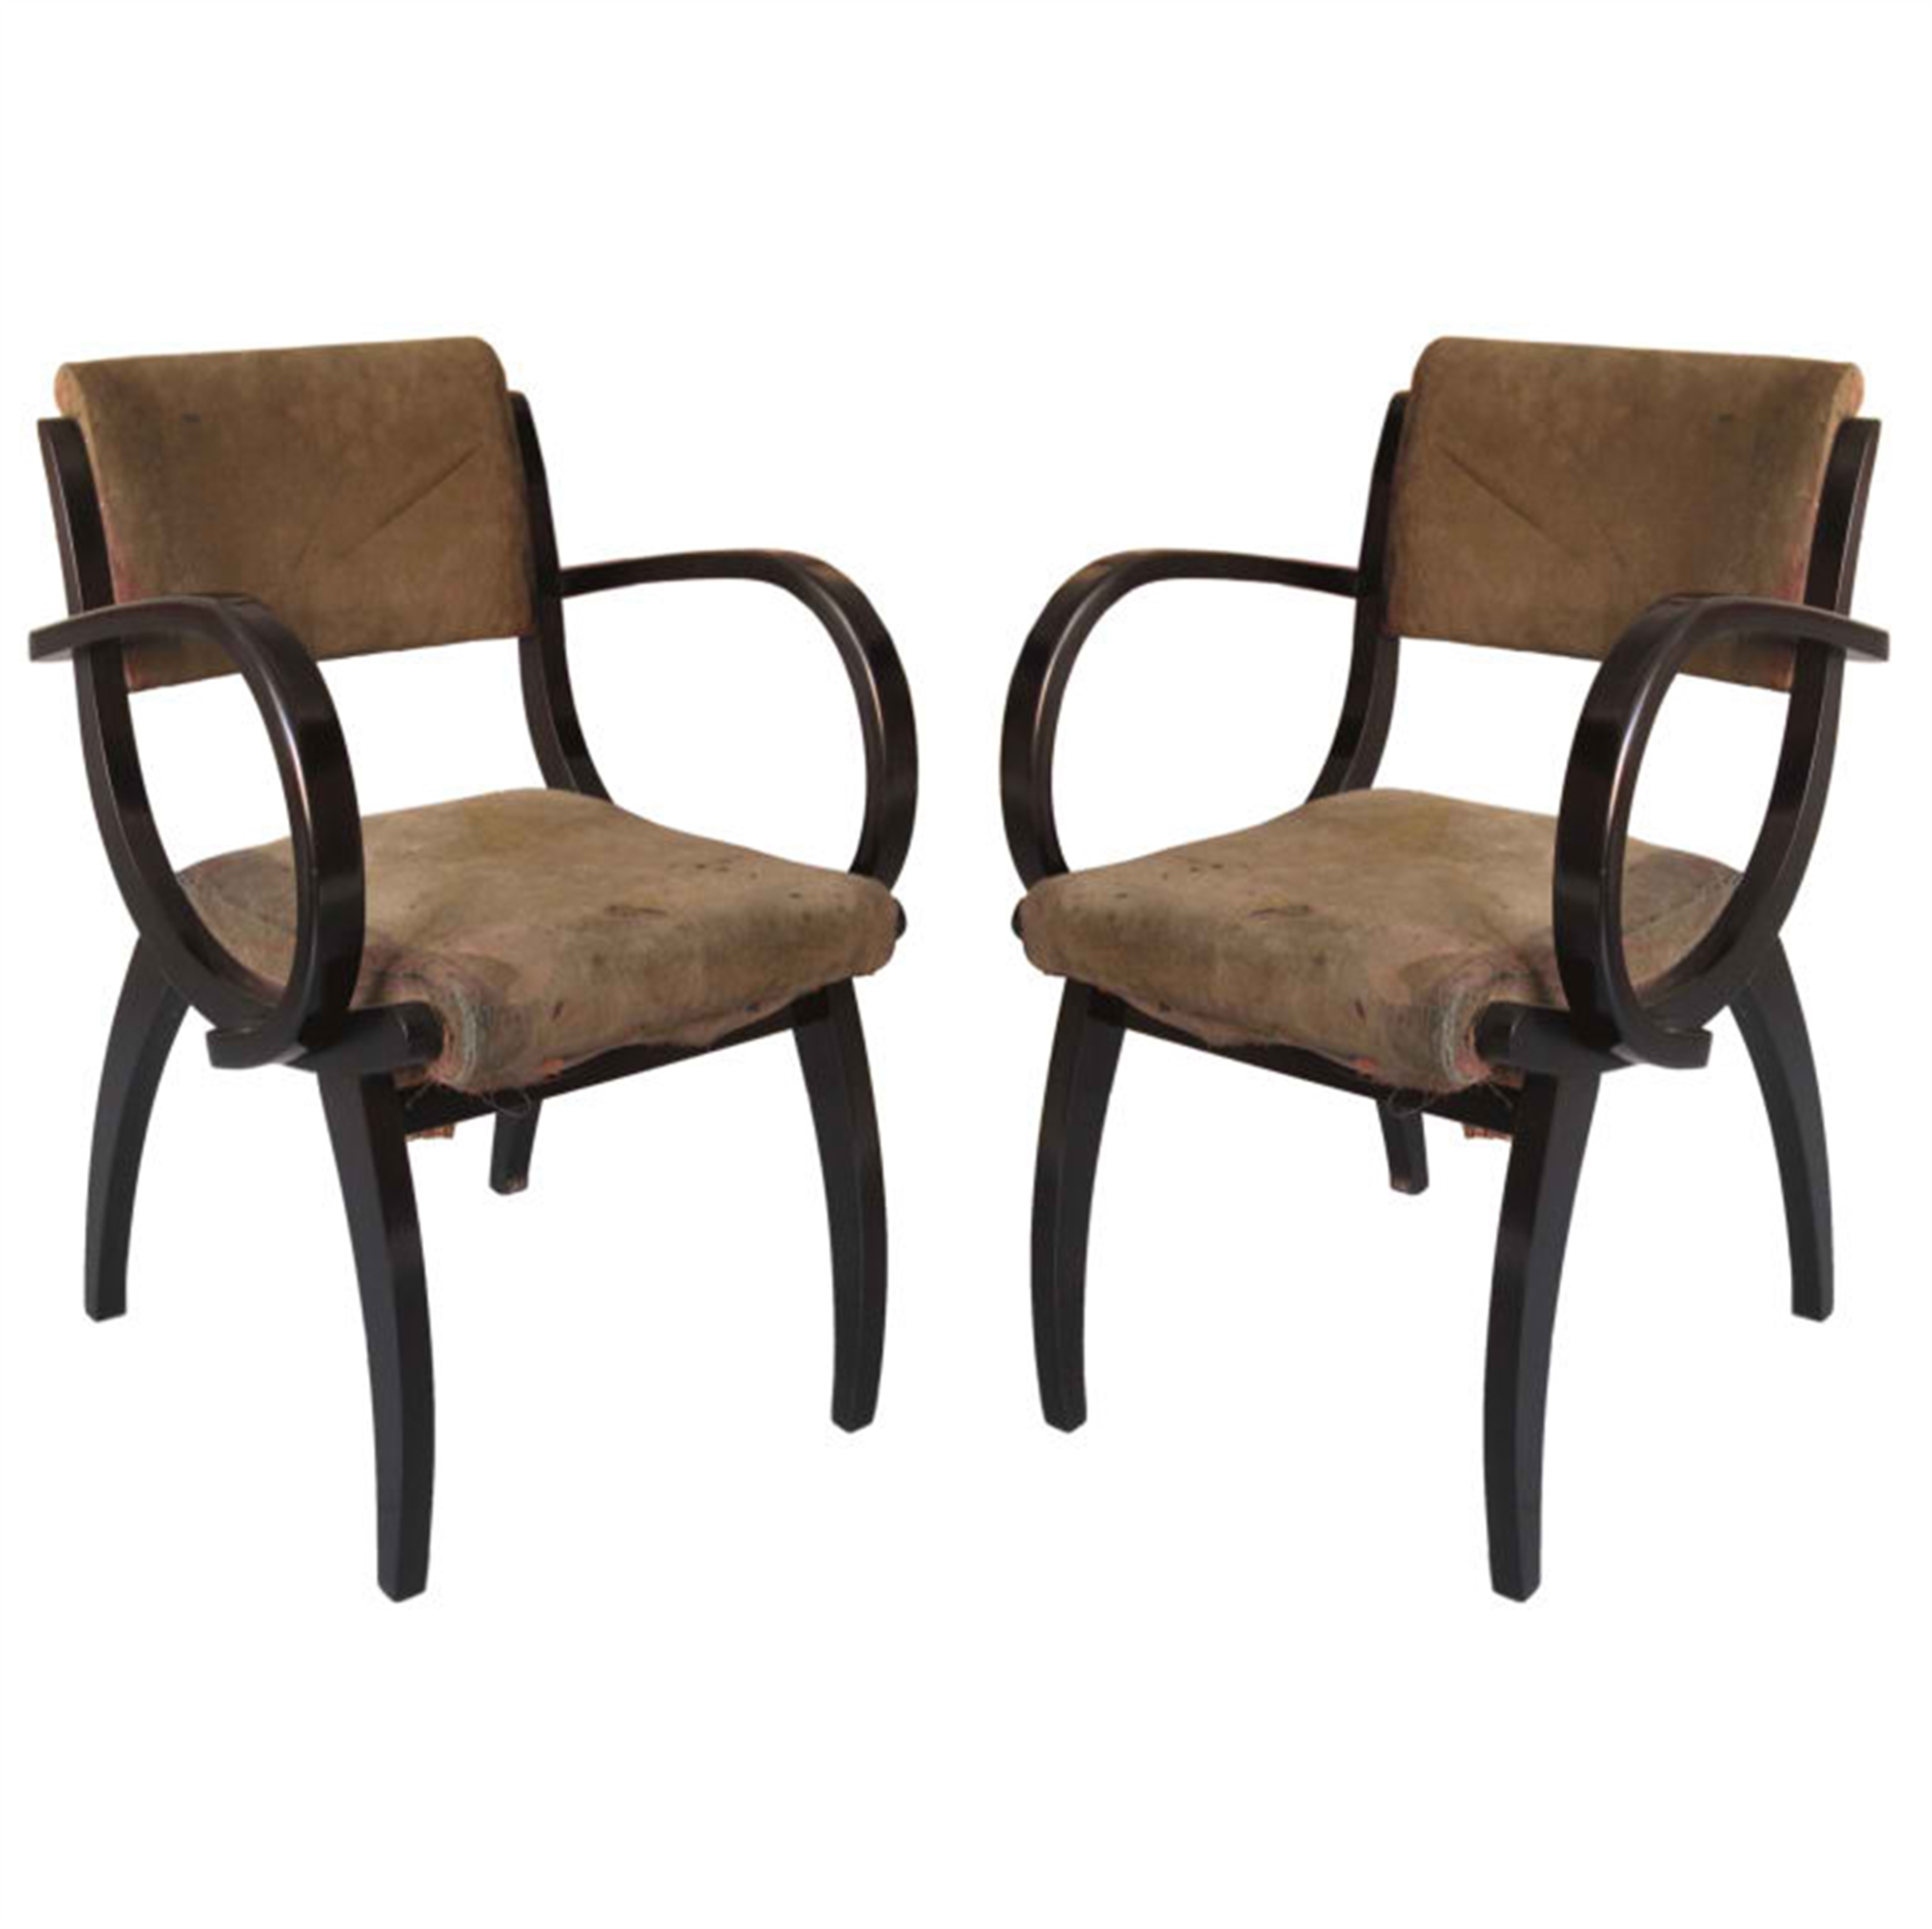 1930's French armchairs by Vintage